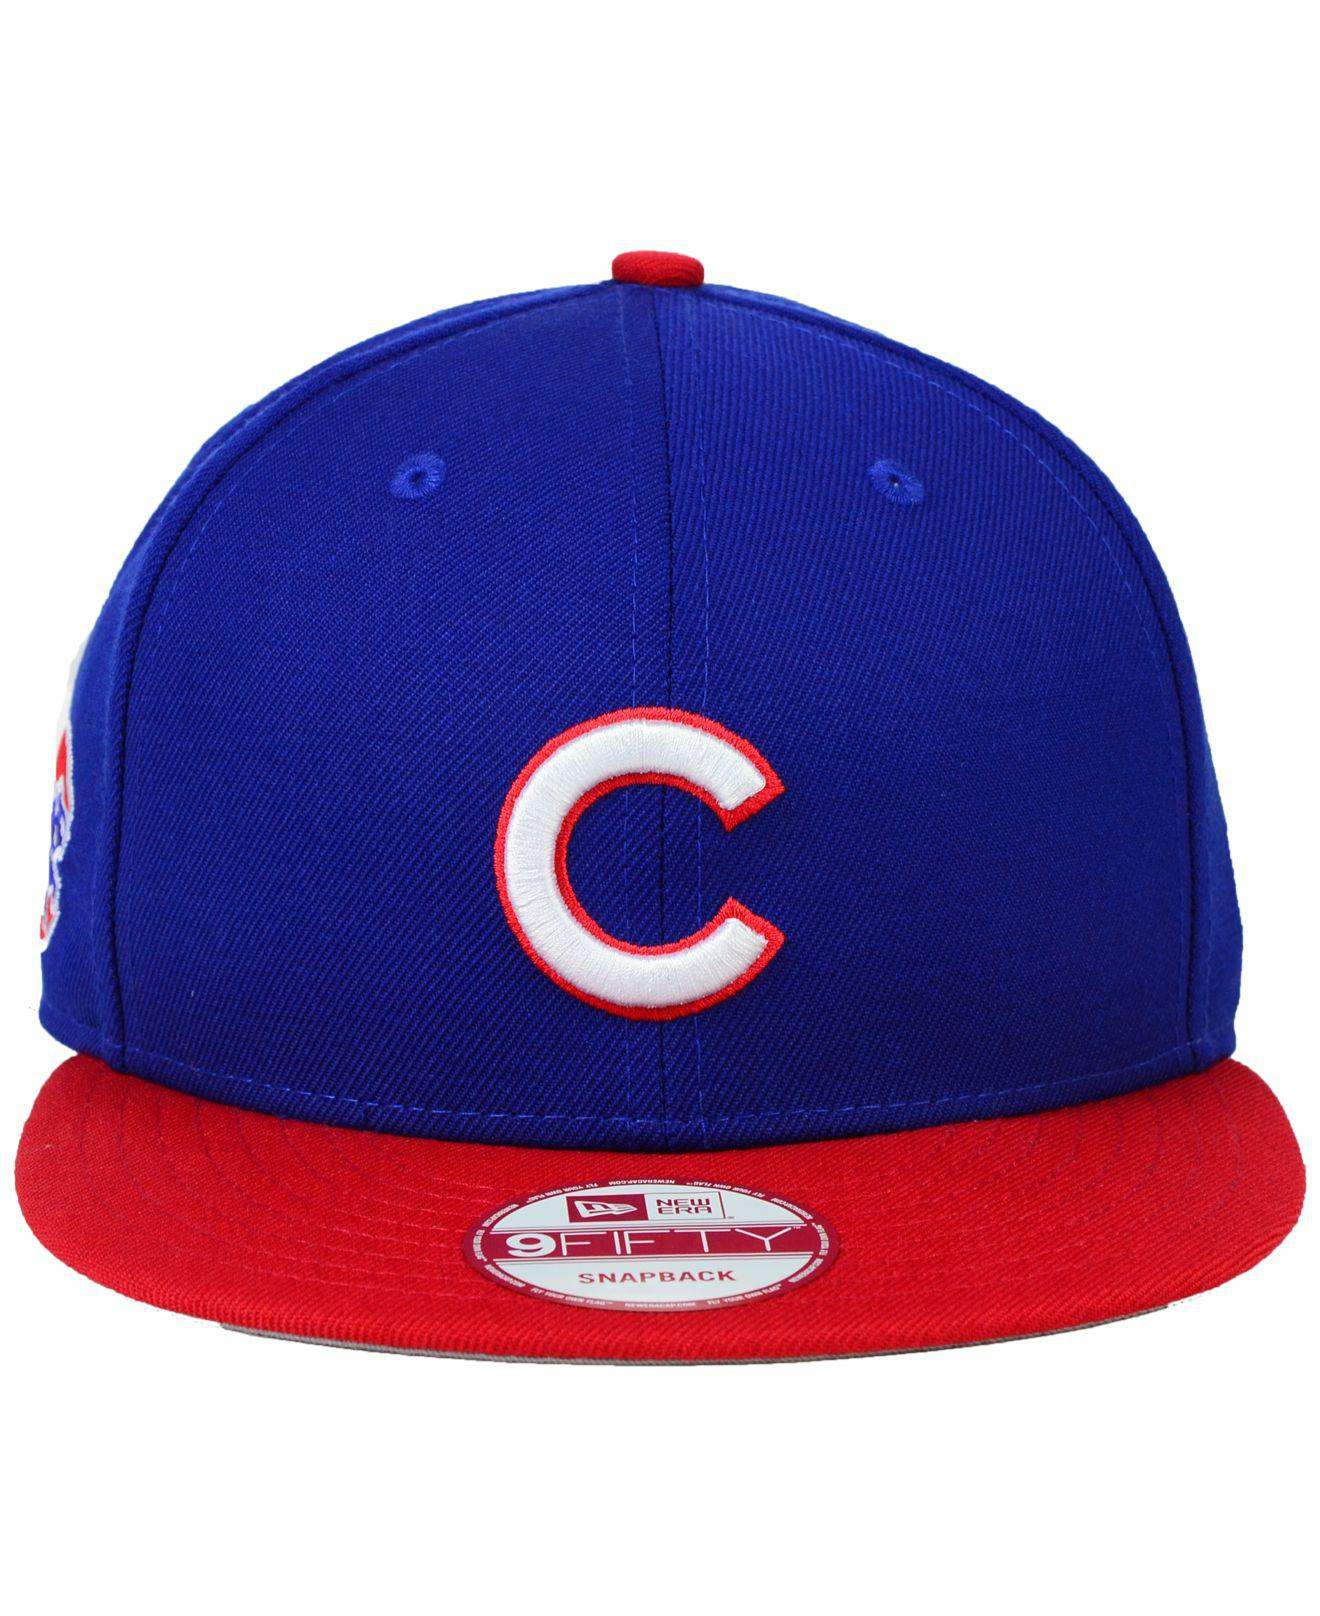 reputable site reasonably priced classic styles ireland chicago cubs new era mlb jersey hook 9fifty snapback cap ...